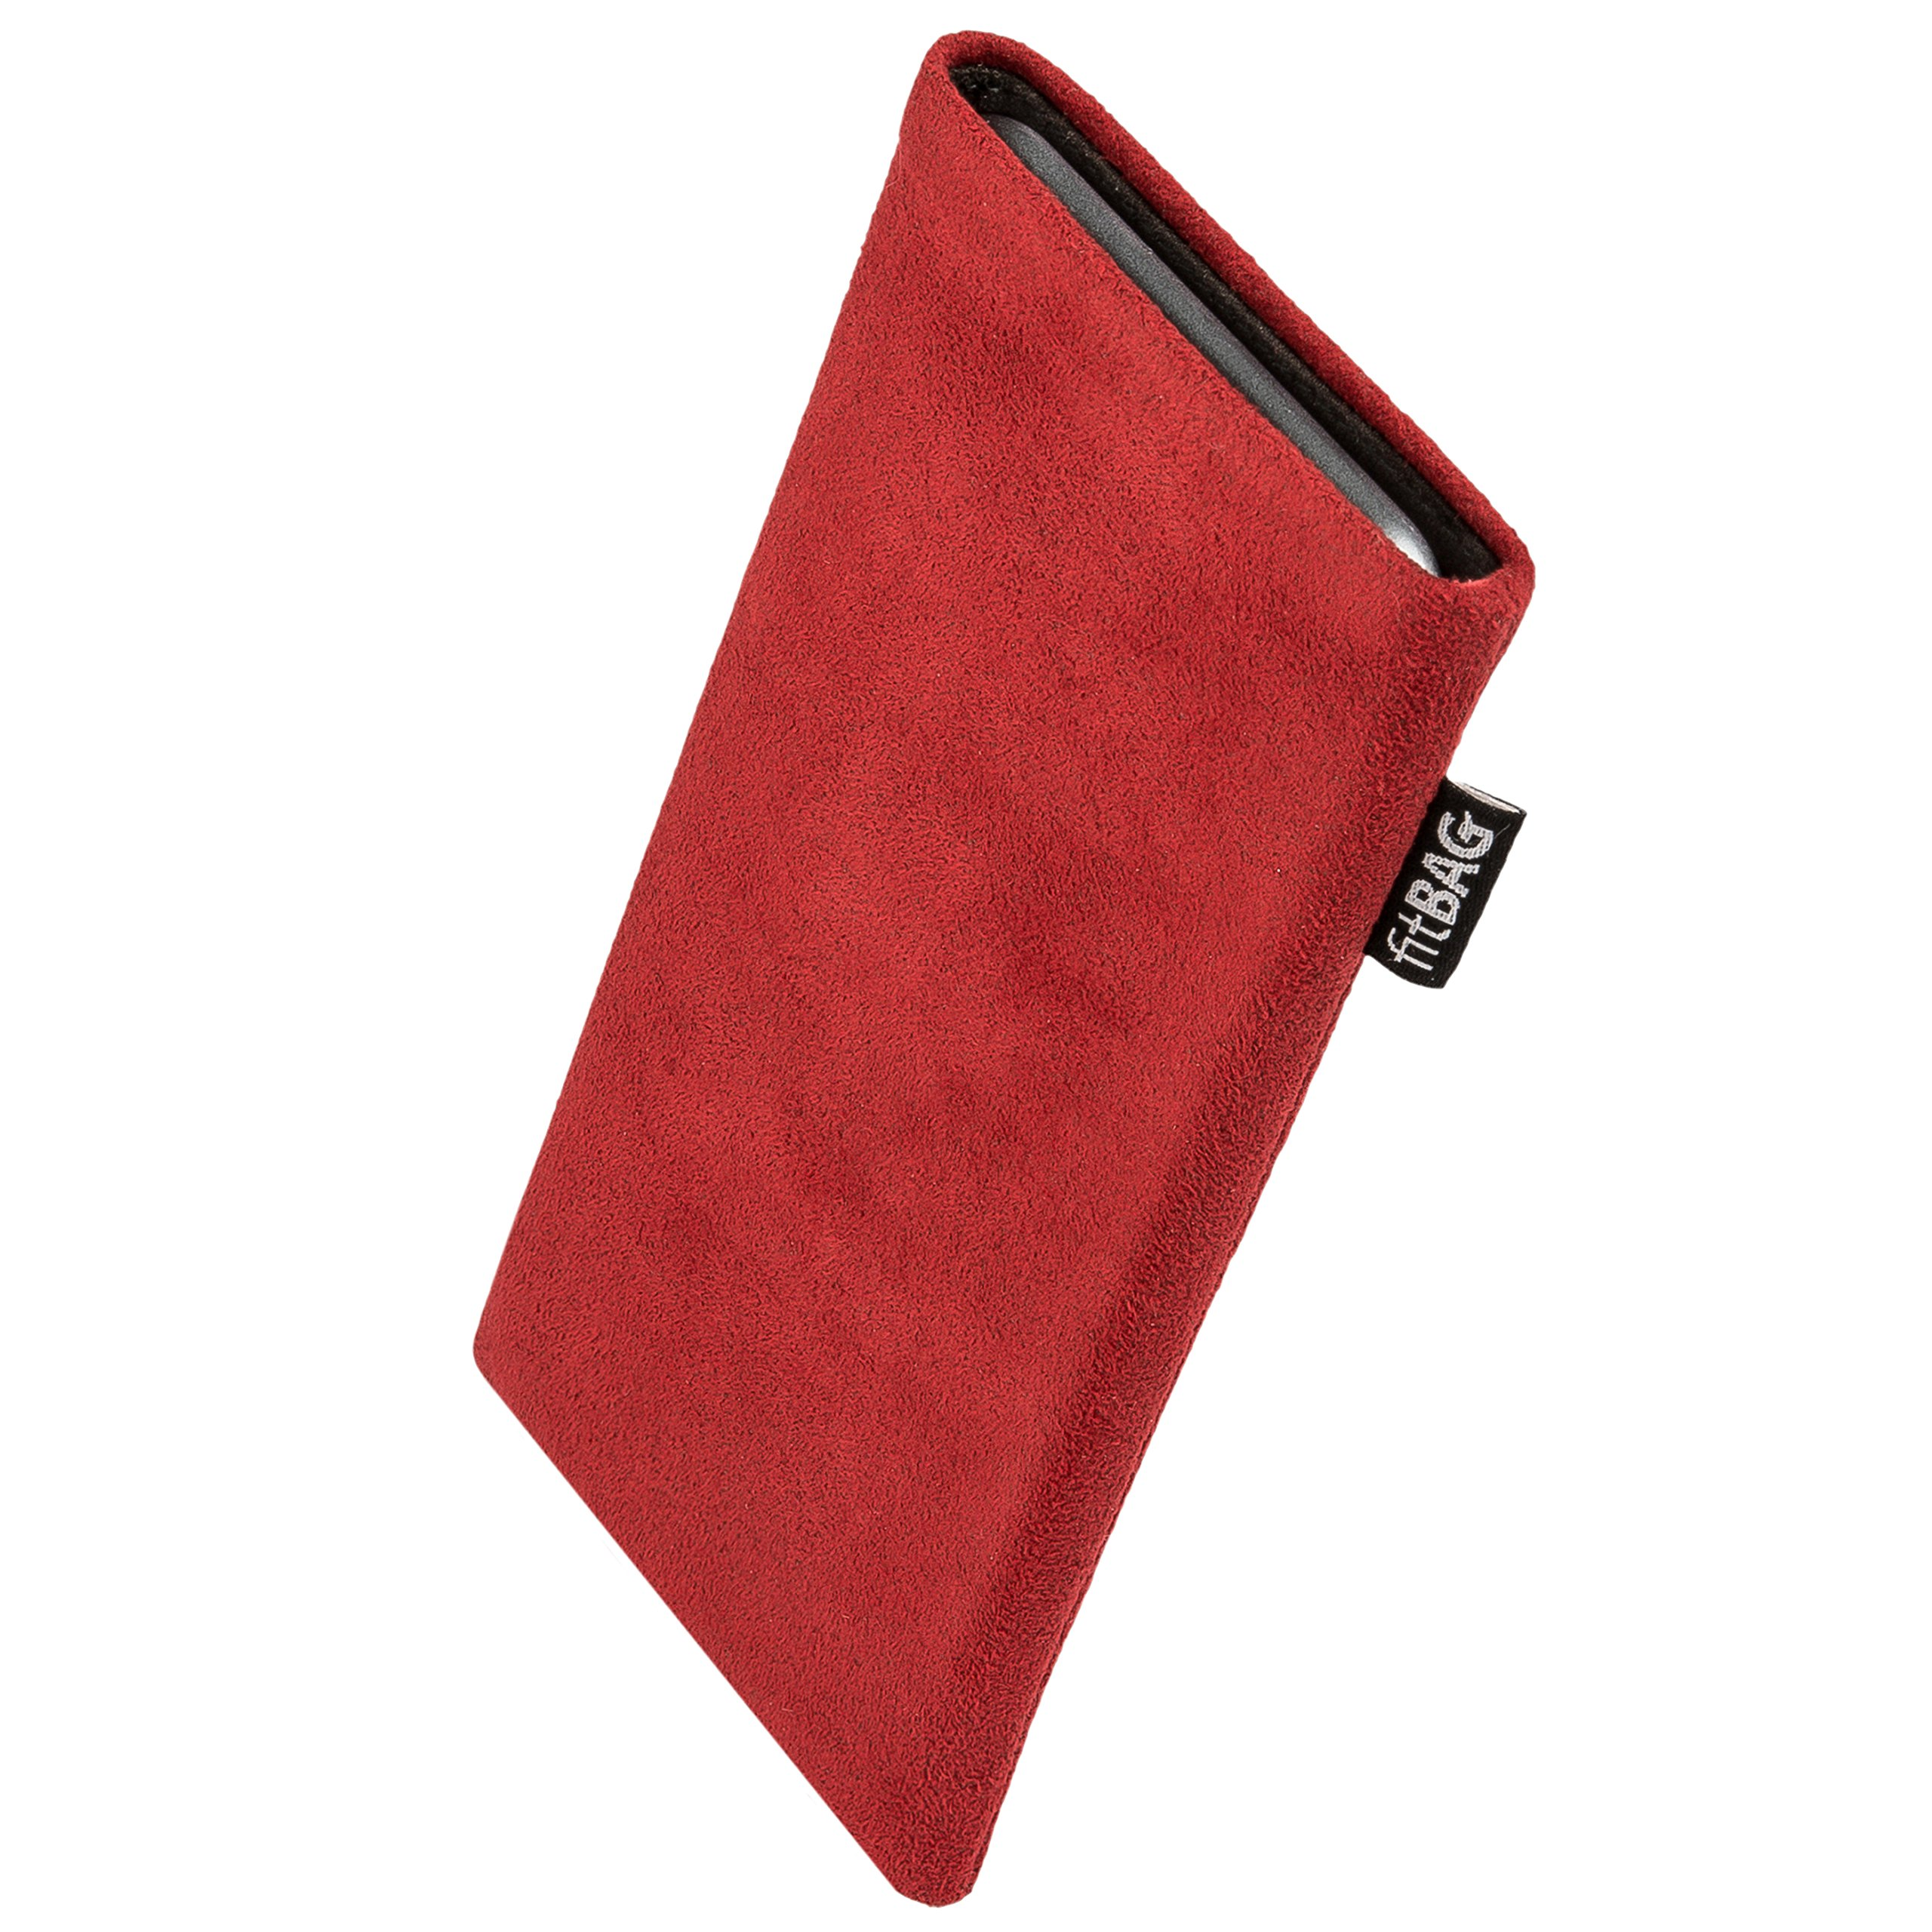 fitBAG Classic Red Custom Tailored Sleeve for OnePlus 7 Pro   Made in Germany   Genuine Alcantara Pouch case Cover with Microfibre Lining for Display Cleaning